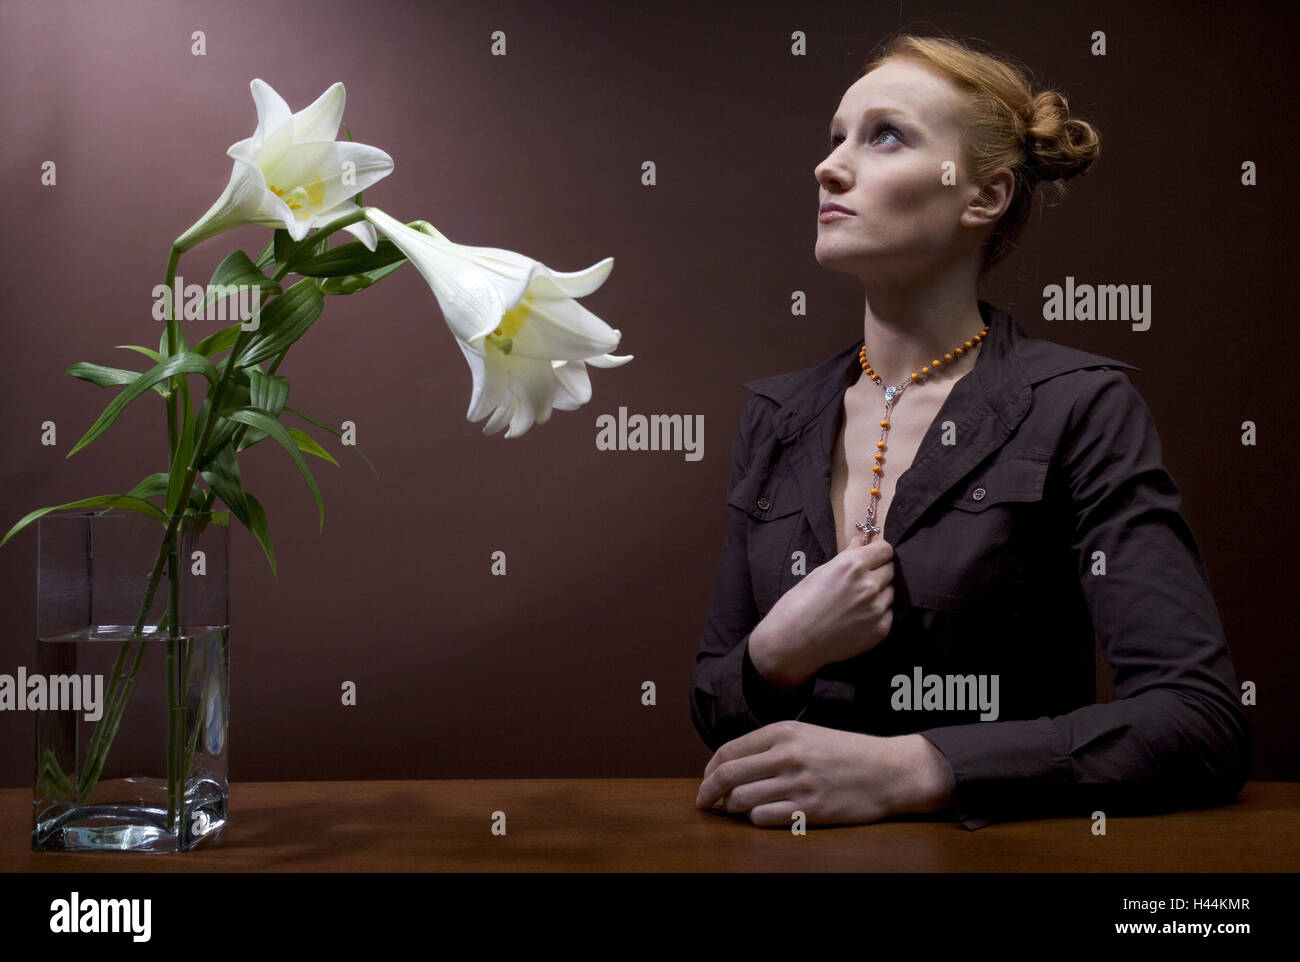 Woman, young, rehaired, necklace,  Wreath of roses, gaze upwards, prayer,  Portrait, vase, lilies,  Series, 20-30 Stock Photo